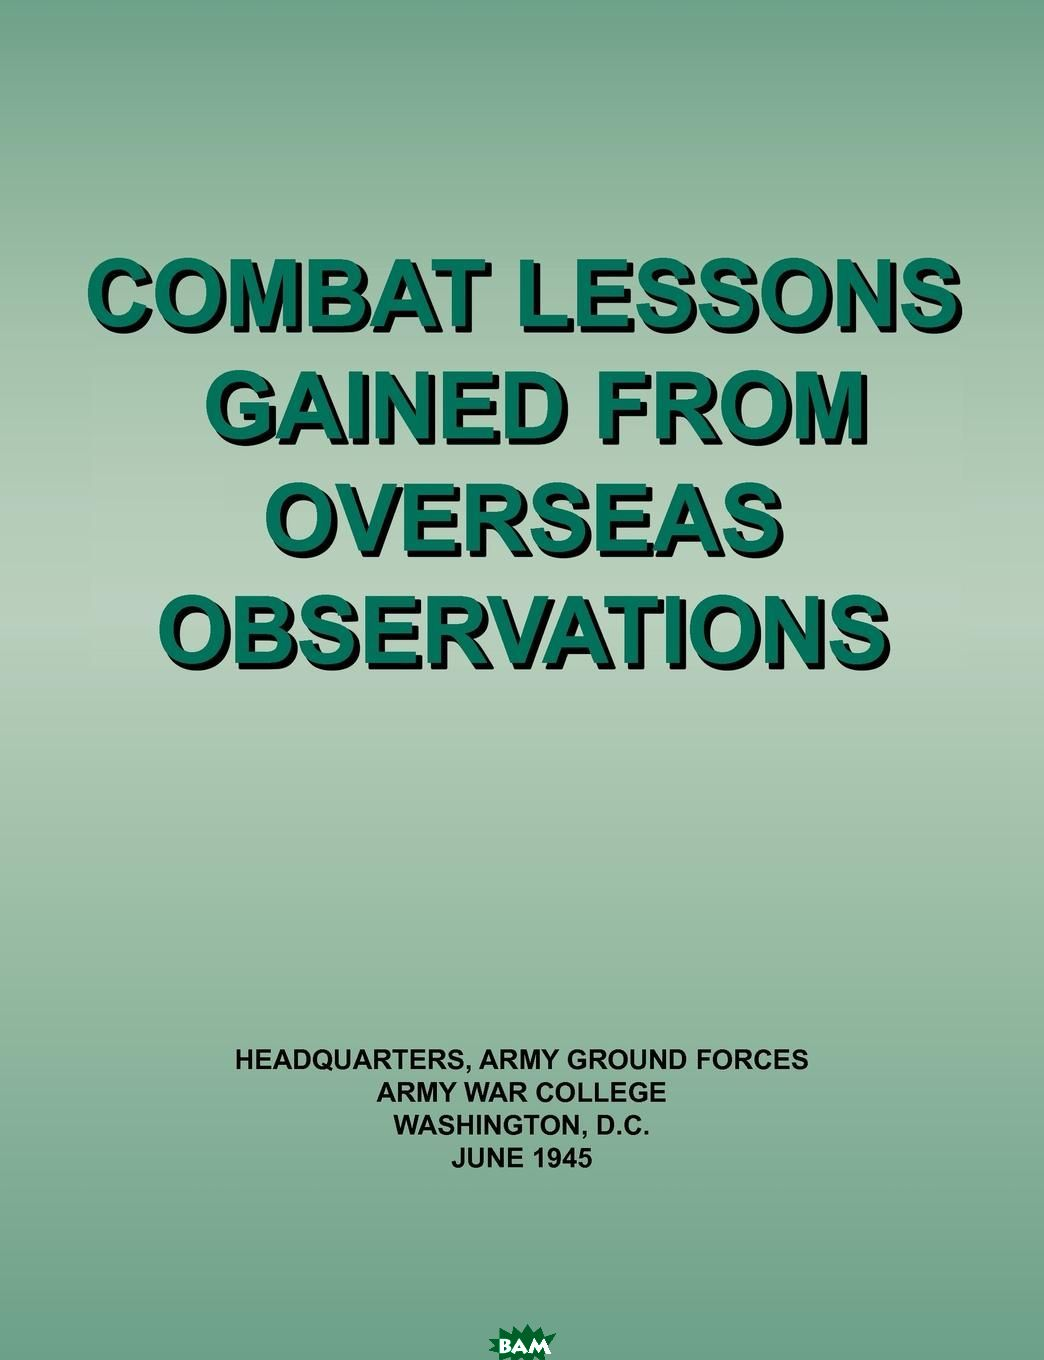 Купить Combat Lessons Gained from Overseas Observation, Army Ground Forces Headquarters, Army War College, 9781780395104